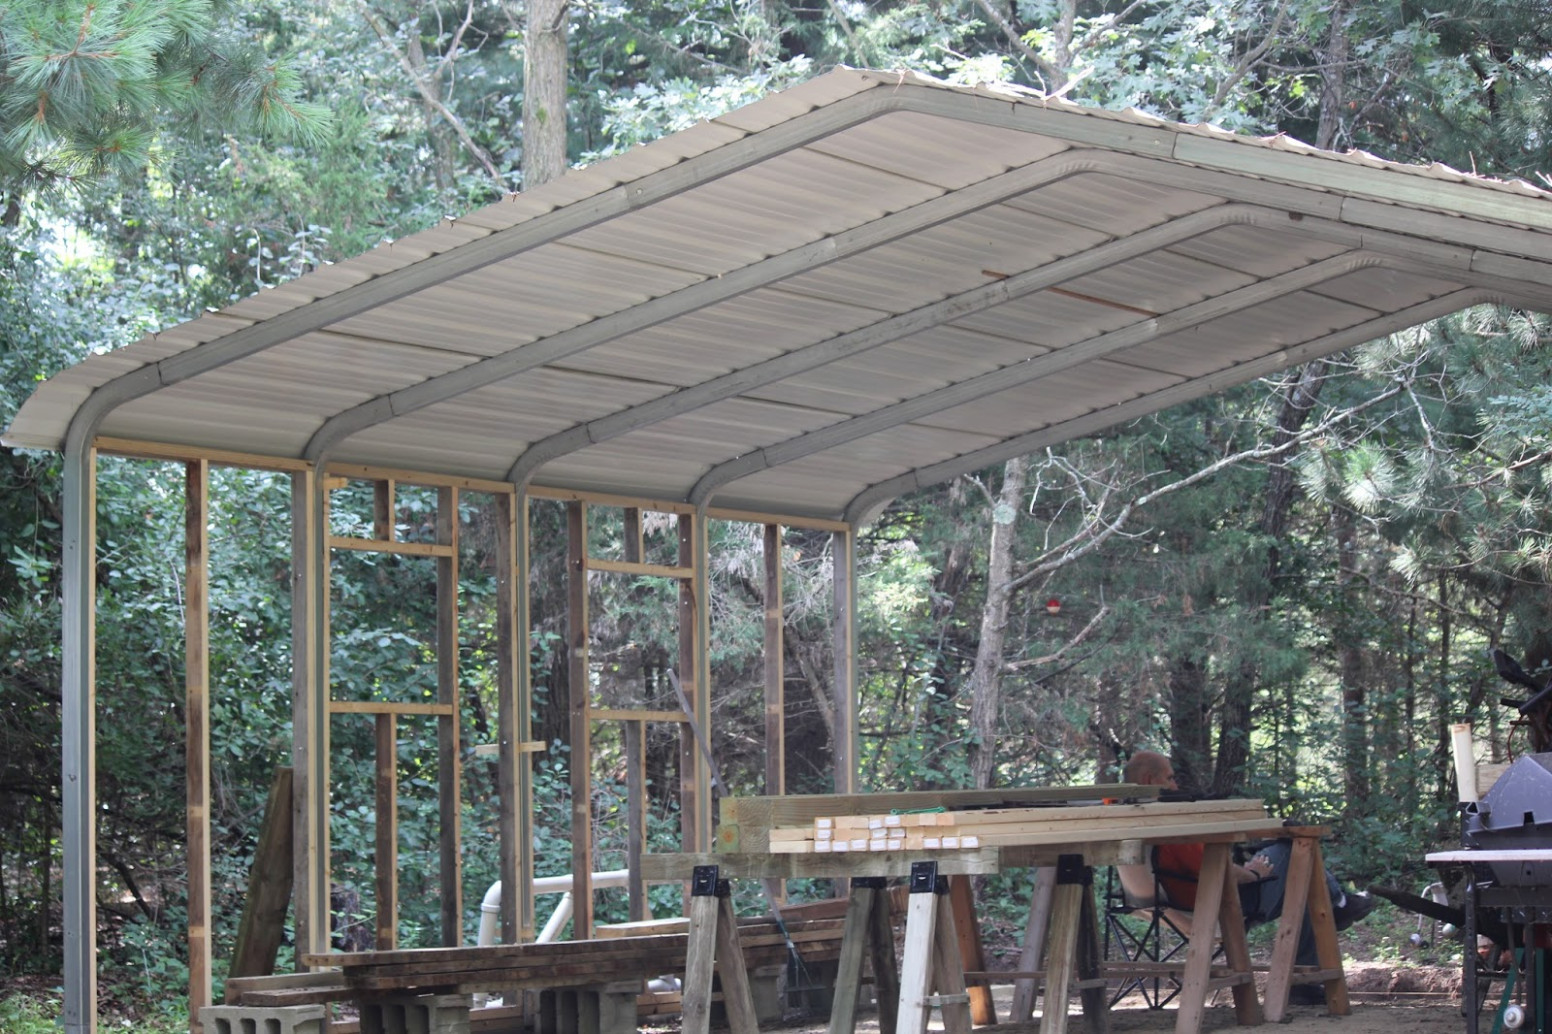 The Cabin Countess : Making A Sows Ear (metal Carport) Into ..